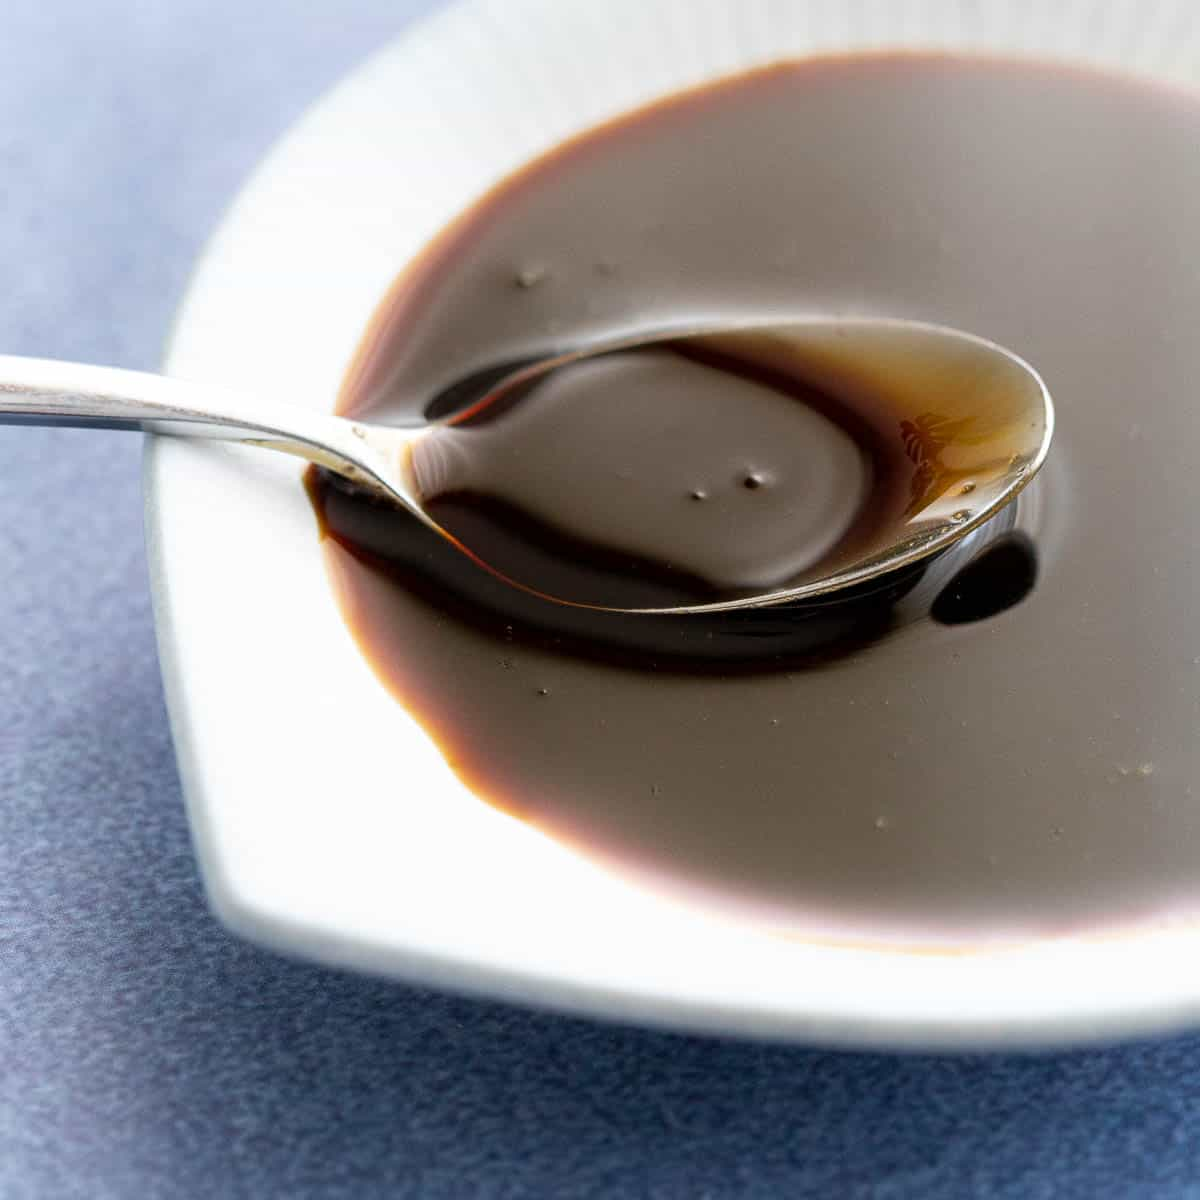 Shiny, thick kecap manis in a small white dish.